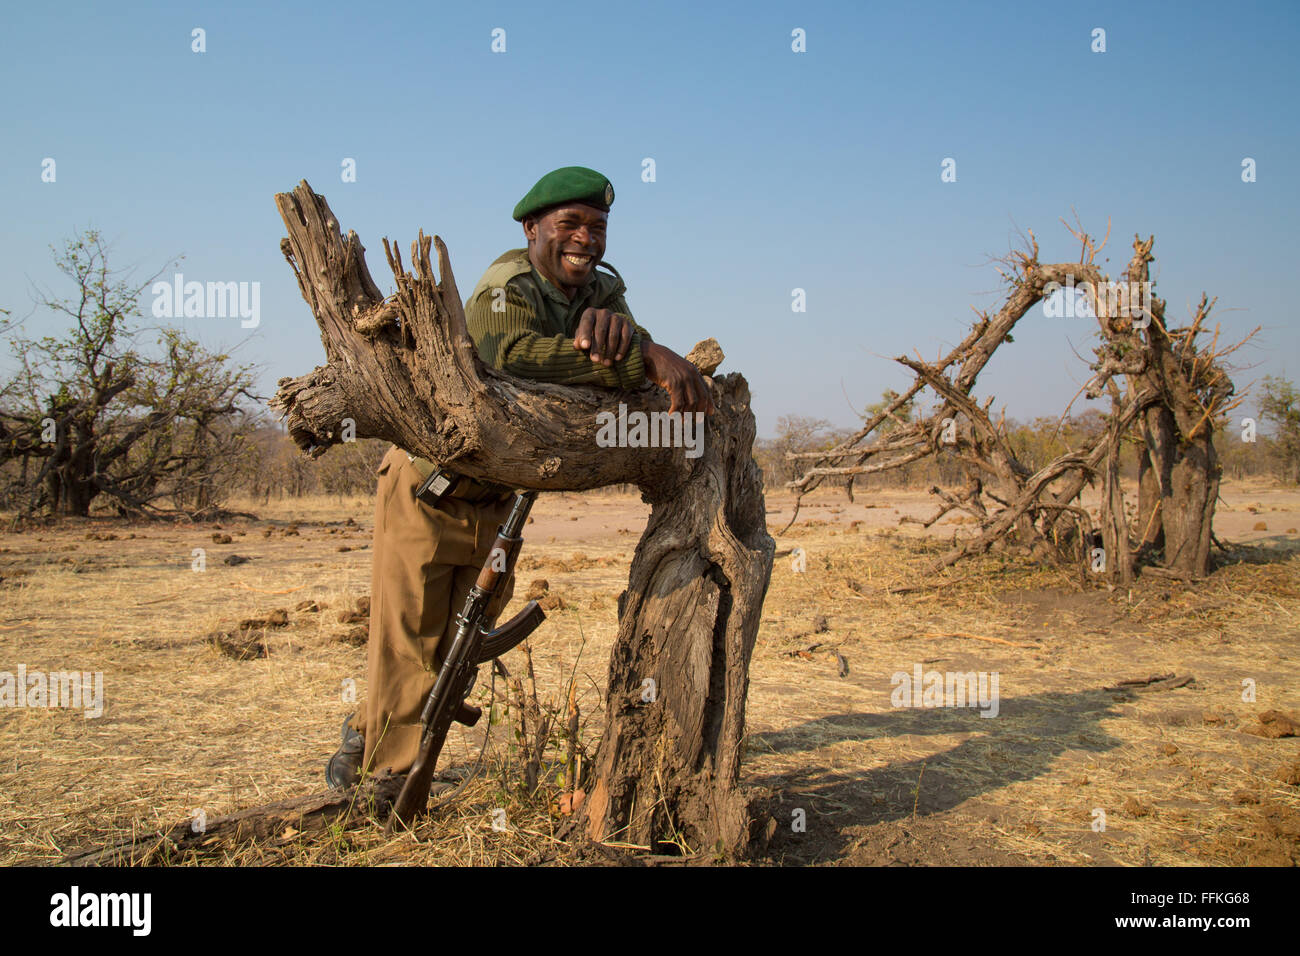 A friendly park ranger in Hwange leaning against a broken tree - Stock Image